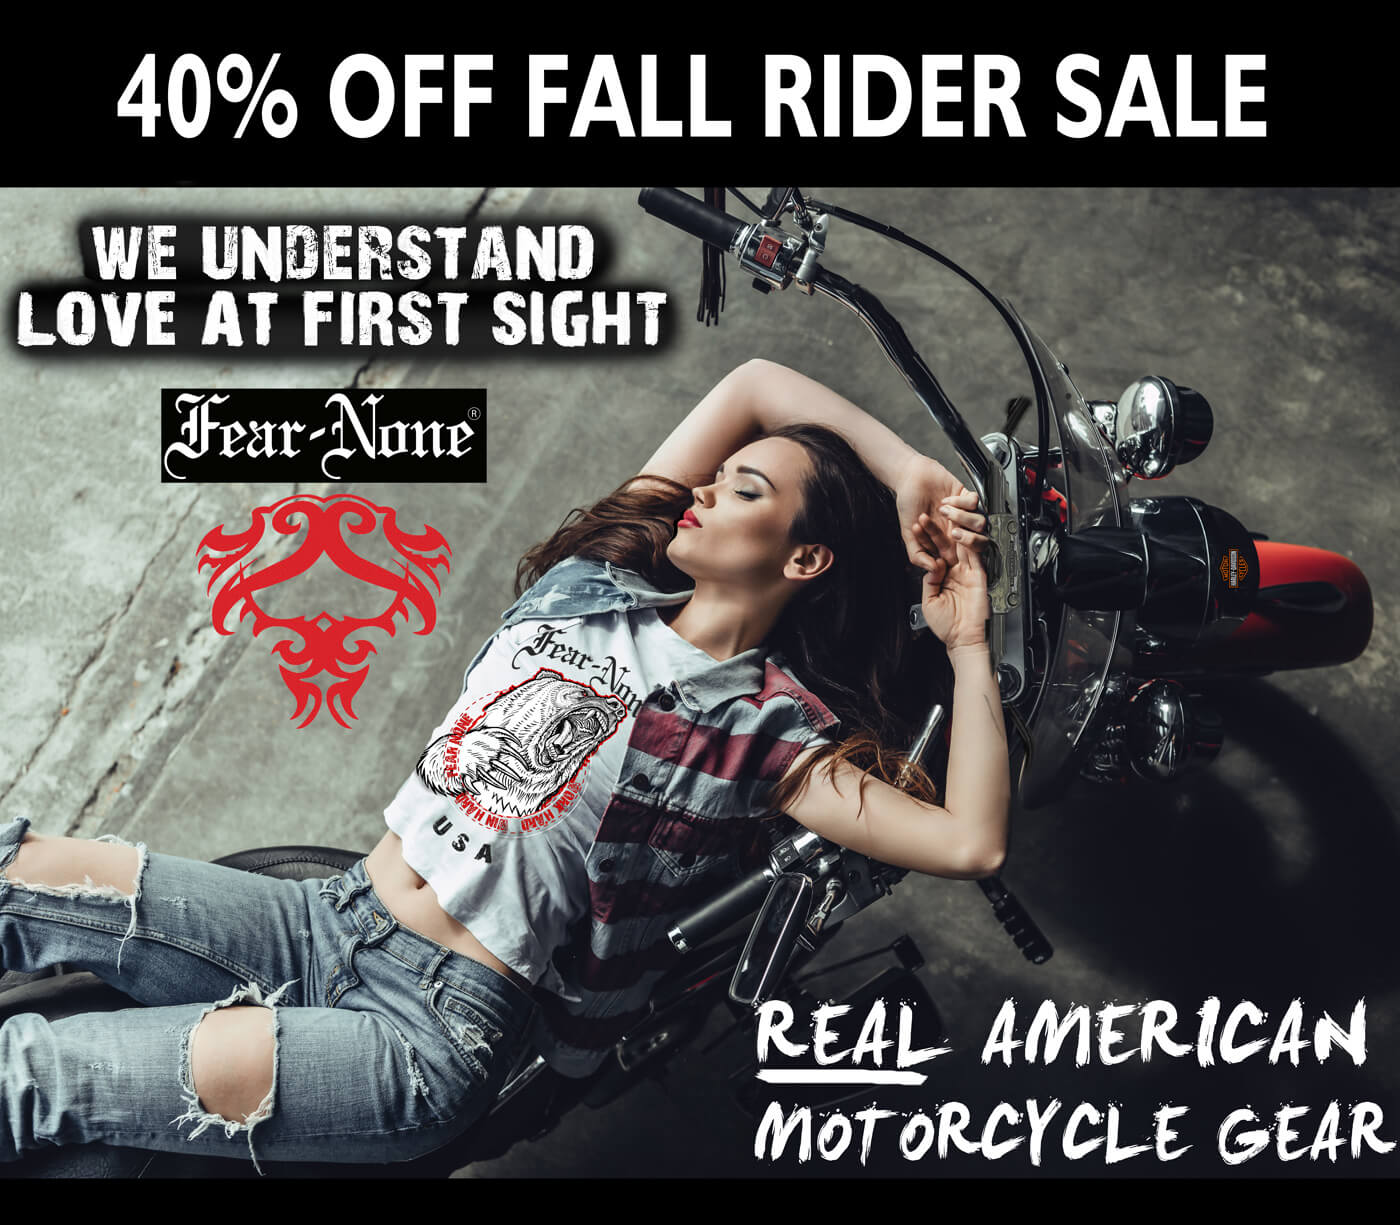 FEAR NONE GEAR MOTORCYCLE CLOTHING